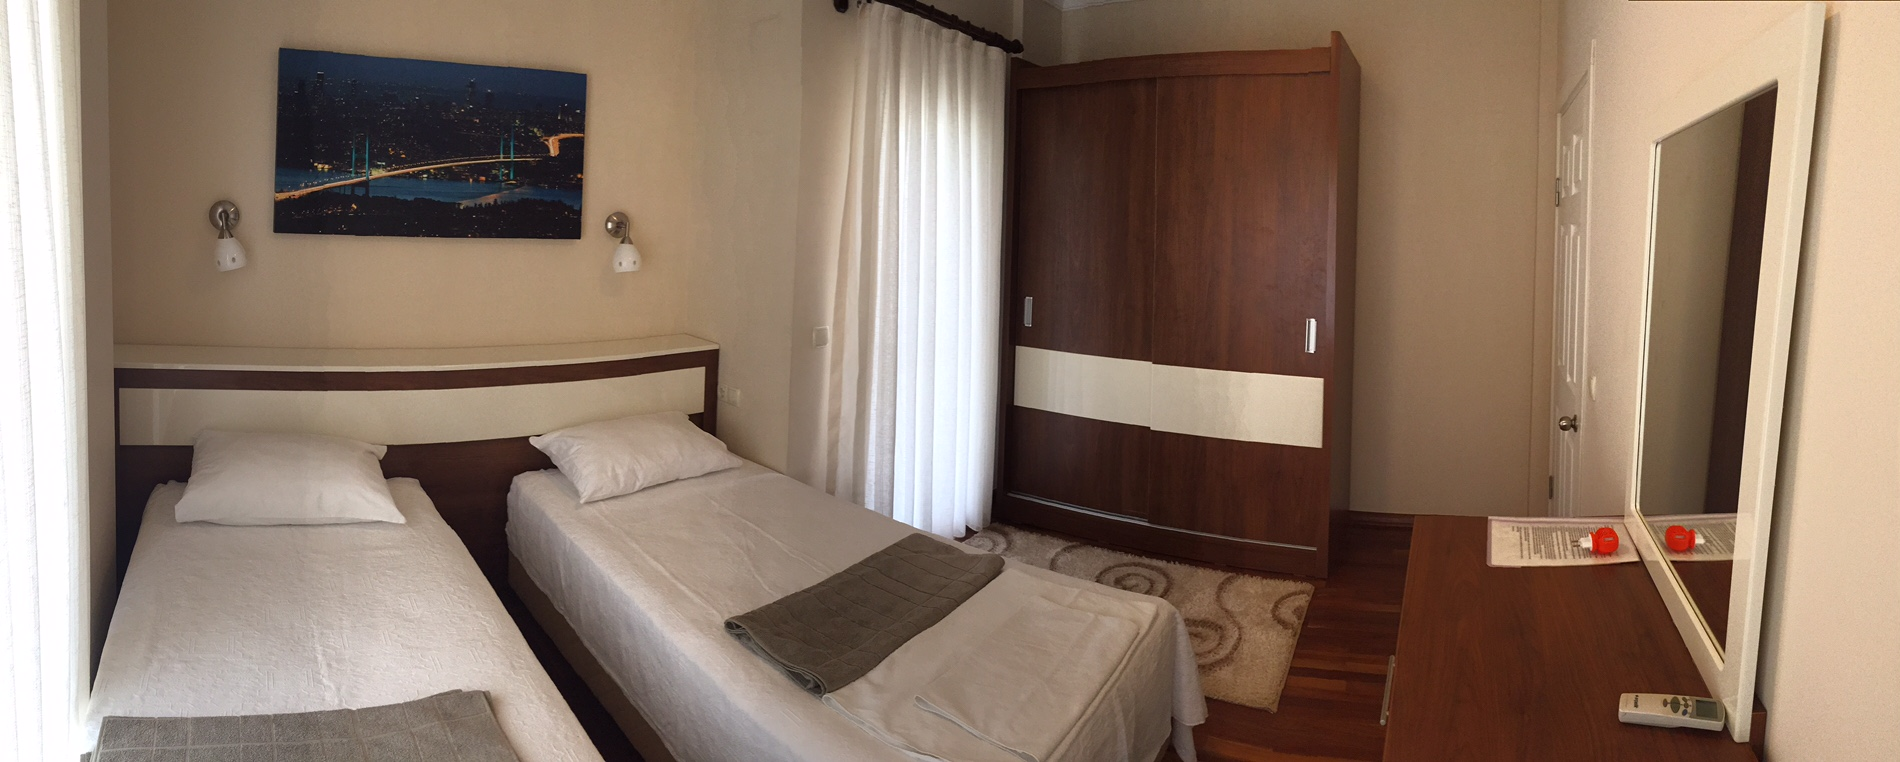 Bedroom 2_Panaromic.JPG